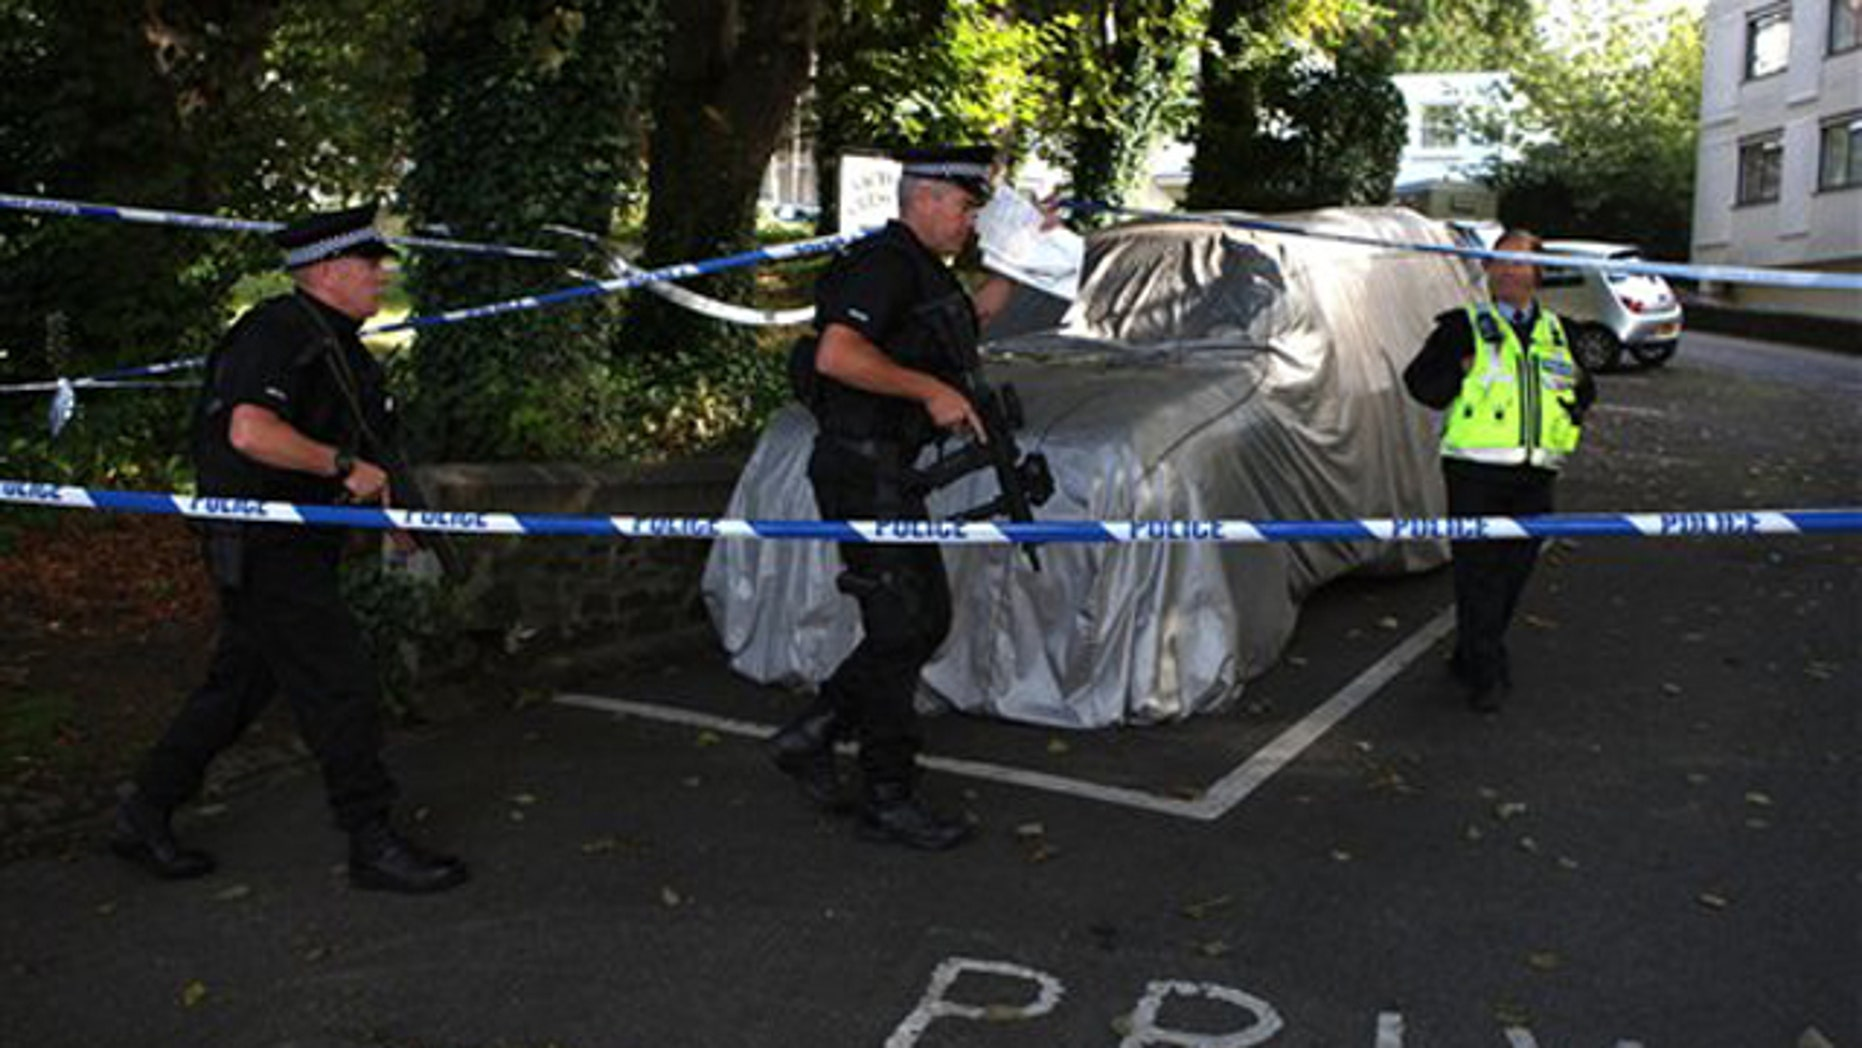 Armed police walk through the grounds of Victoria Crescent in St Helier, Jersey, Monday Aug. 15, 2011. A man was arrested on suspicion of stabbing six people to death, including three children, on the British island of Jersey in what was the deadliest crime in the community's living memory, police said. (AP Photo/Steve Parsons, PA) UNITED KINGDOM OUT NO SALES NO ARCHIVE